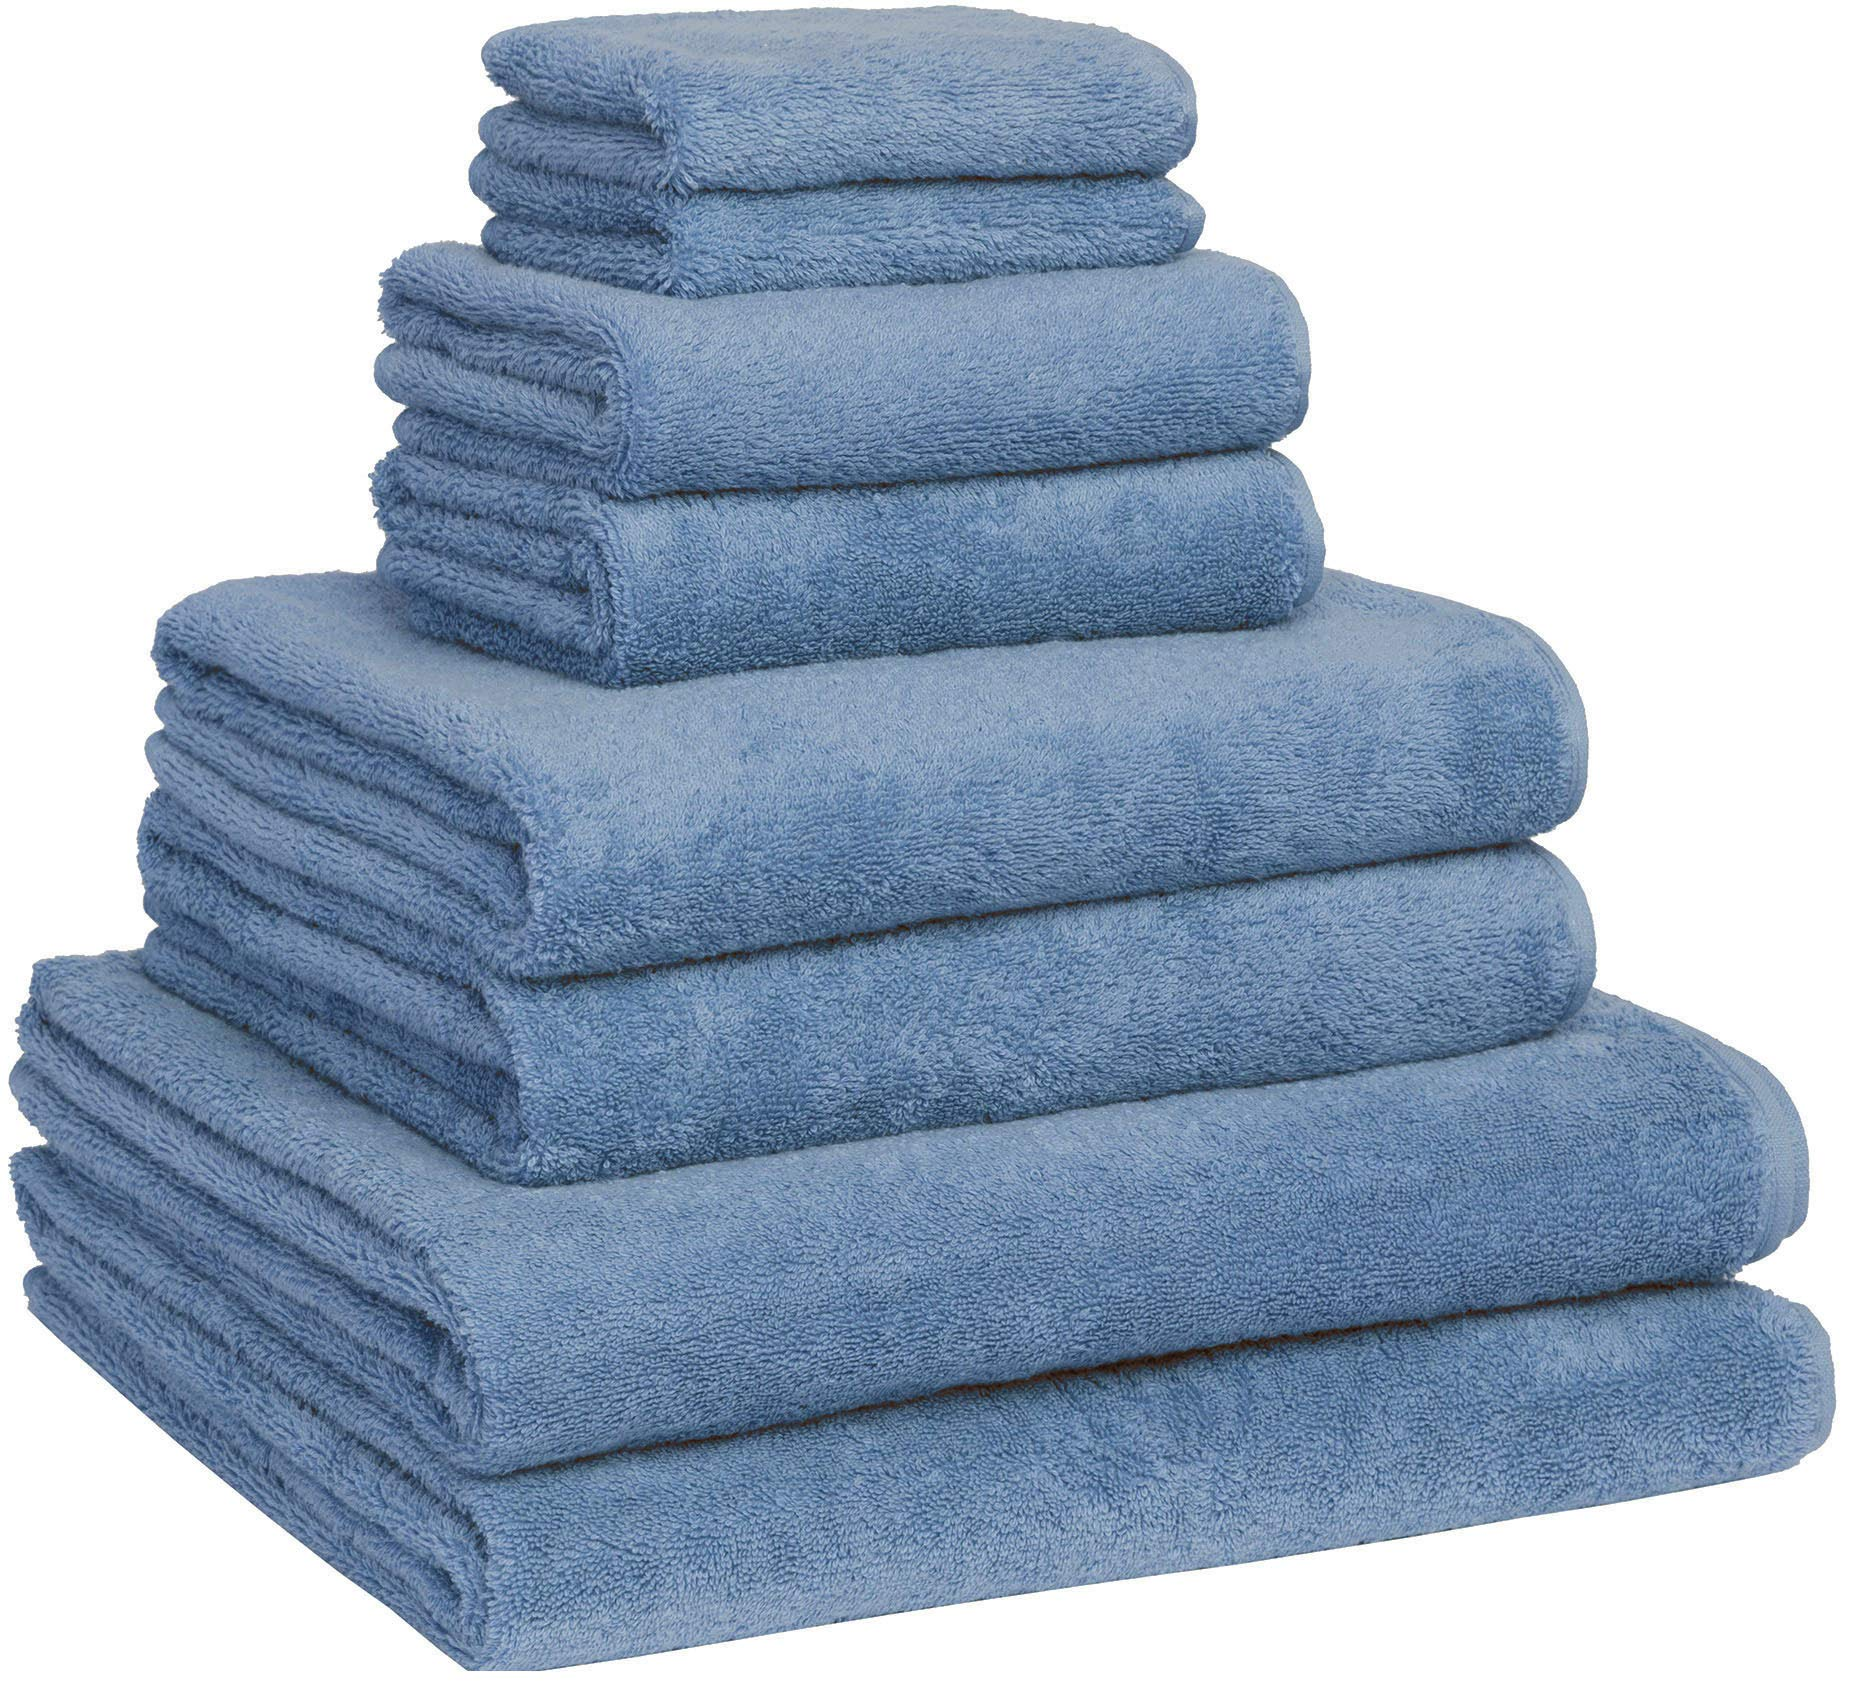 Fast Drying Extra Large Bath Towel Set, Decorative & Luxury Premium Turkish Cotton Towels for Clearance - Spa & Hotel Quality - Pack of 8 Including 2 Oversized Bath Sheets (30x60) - Blue